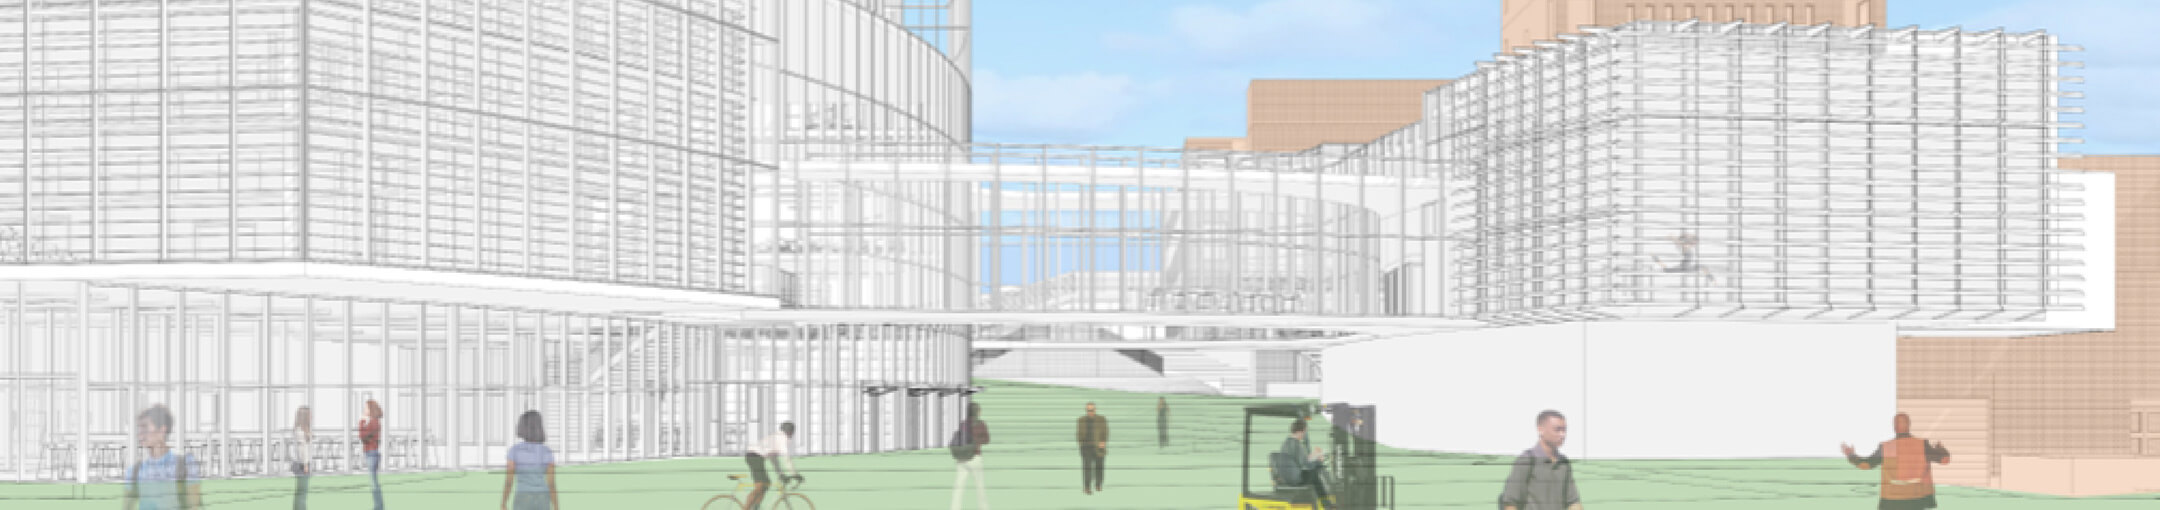 Early renderings of what the upcoming Innovative Maker and Learning Complex will look like.